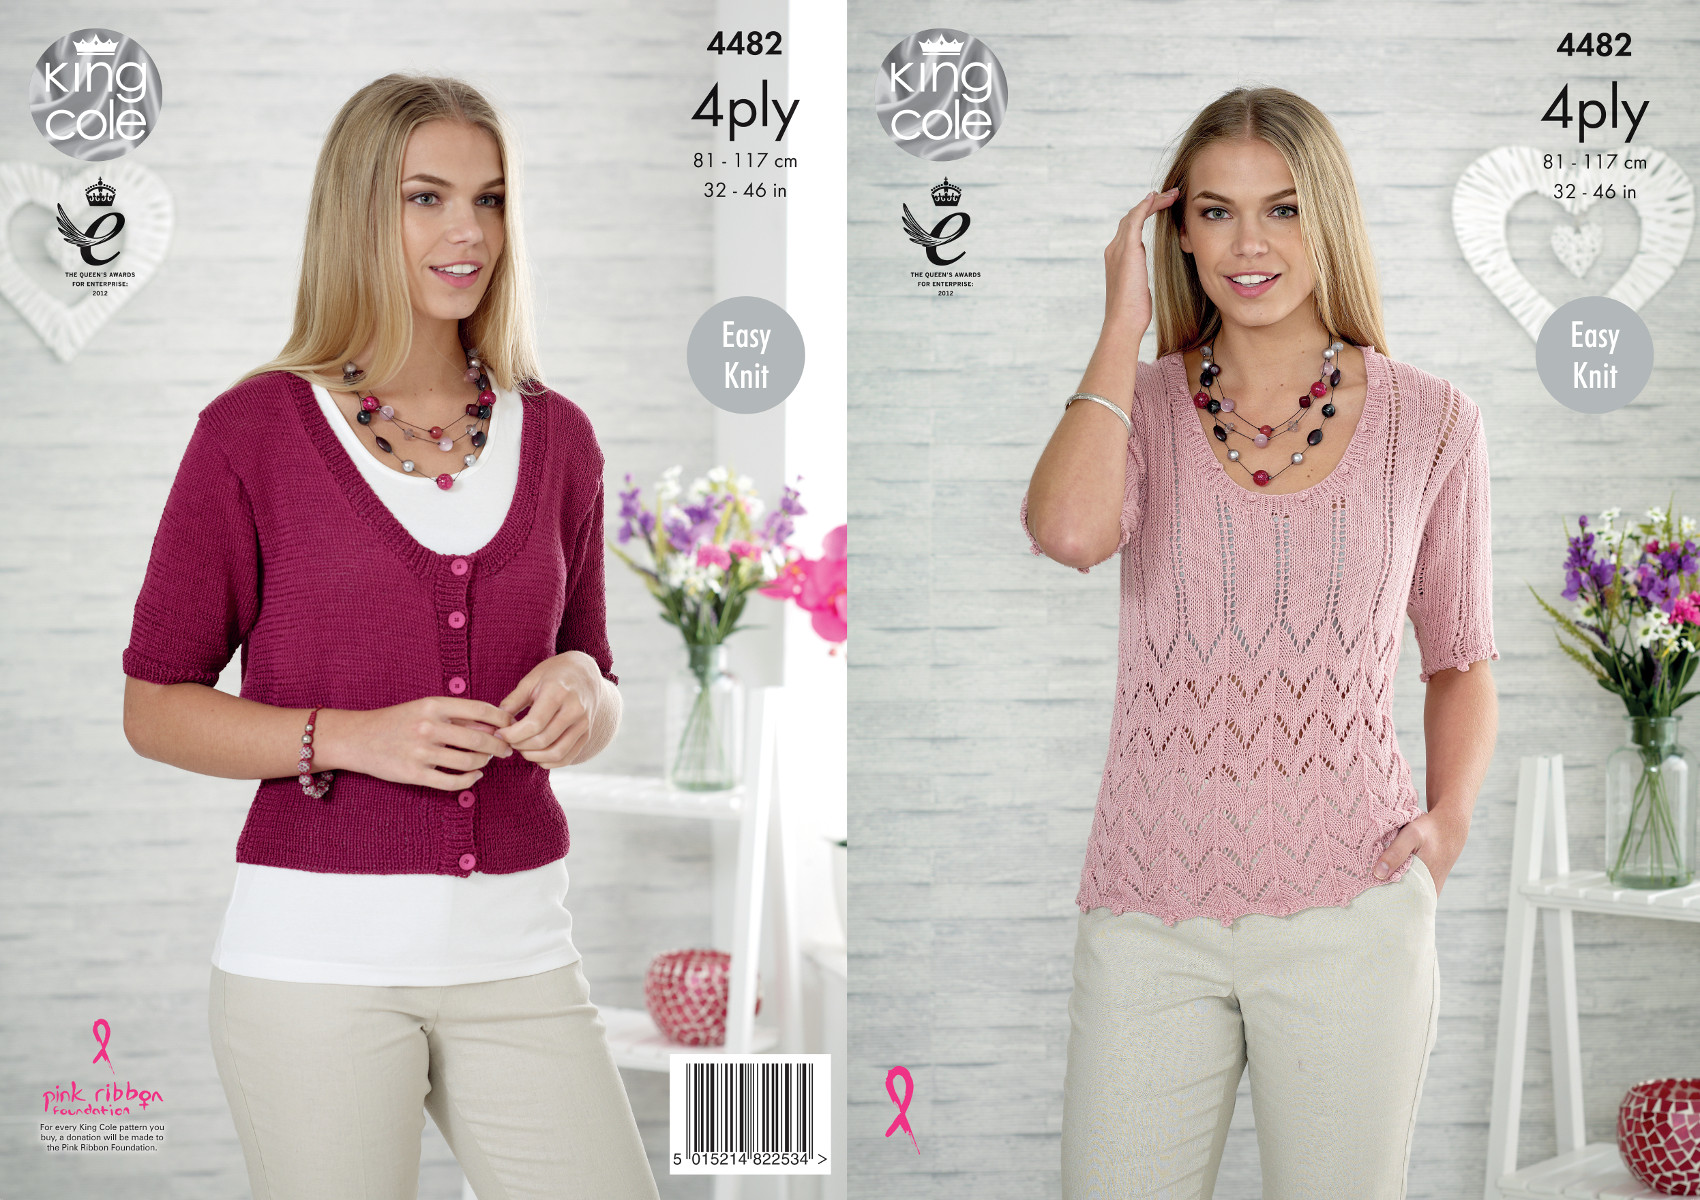 Womens lace top cardigan knitting pattern king cole ladies easy smiley face bankloansurffo Images